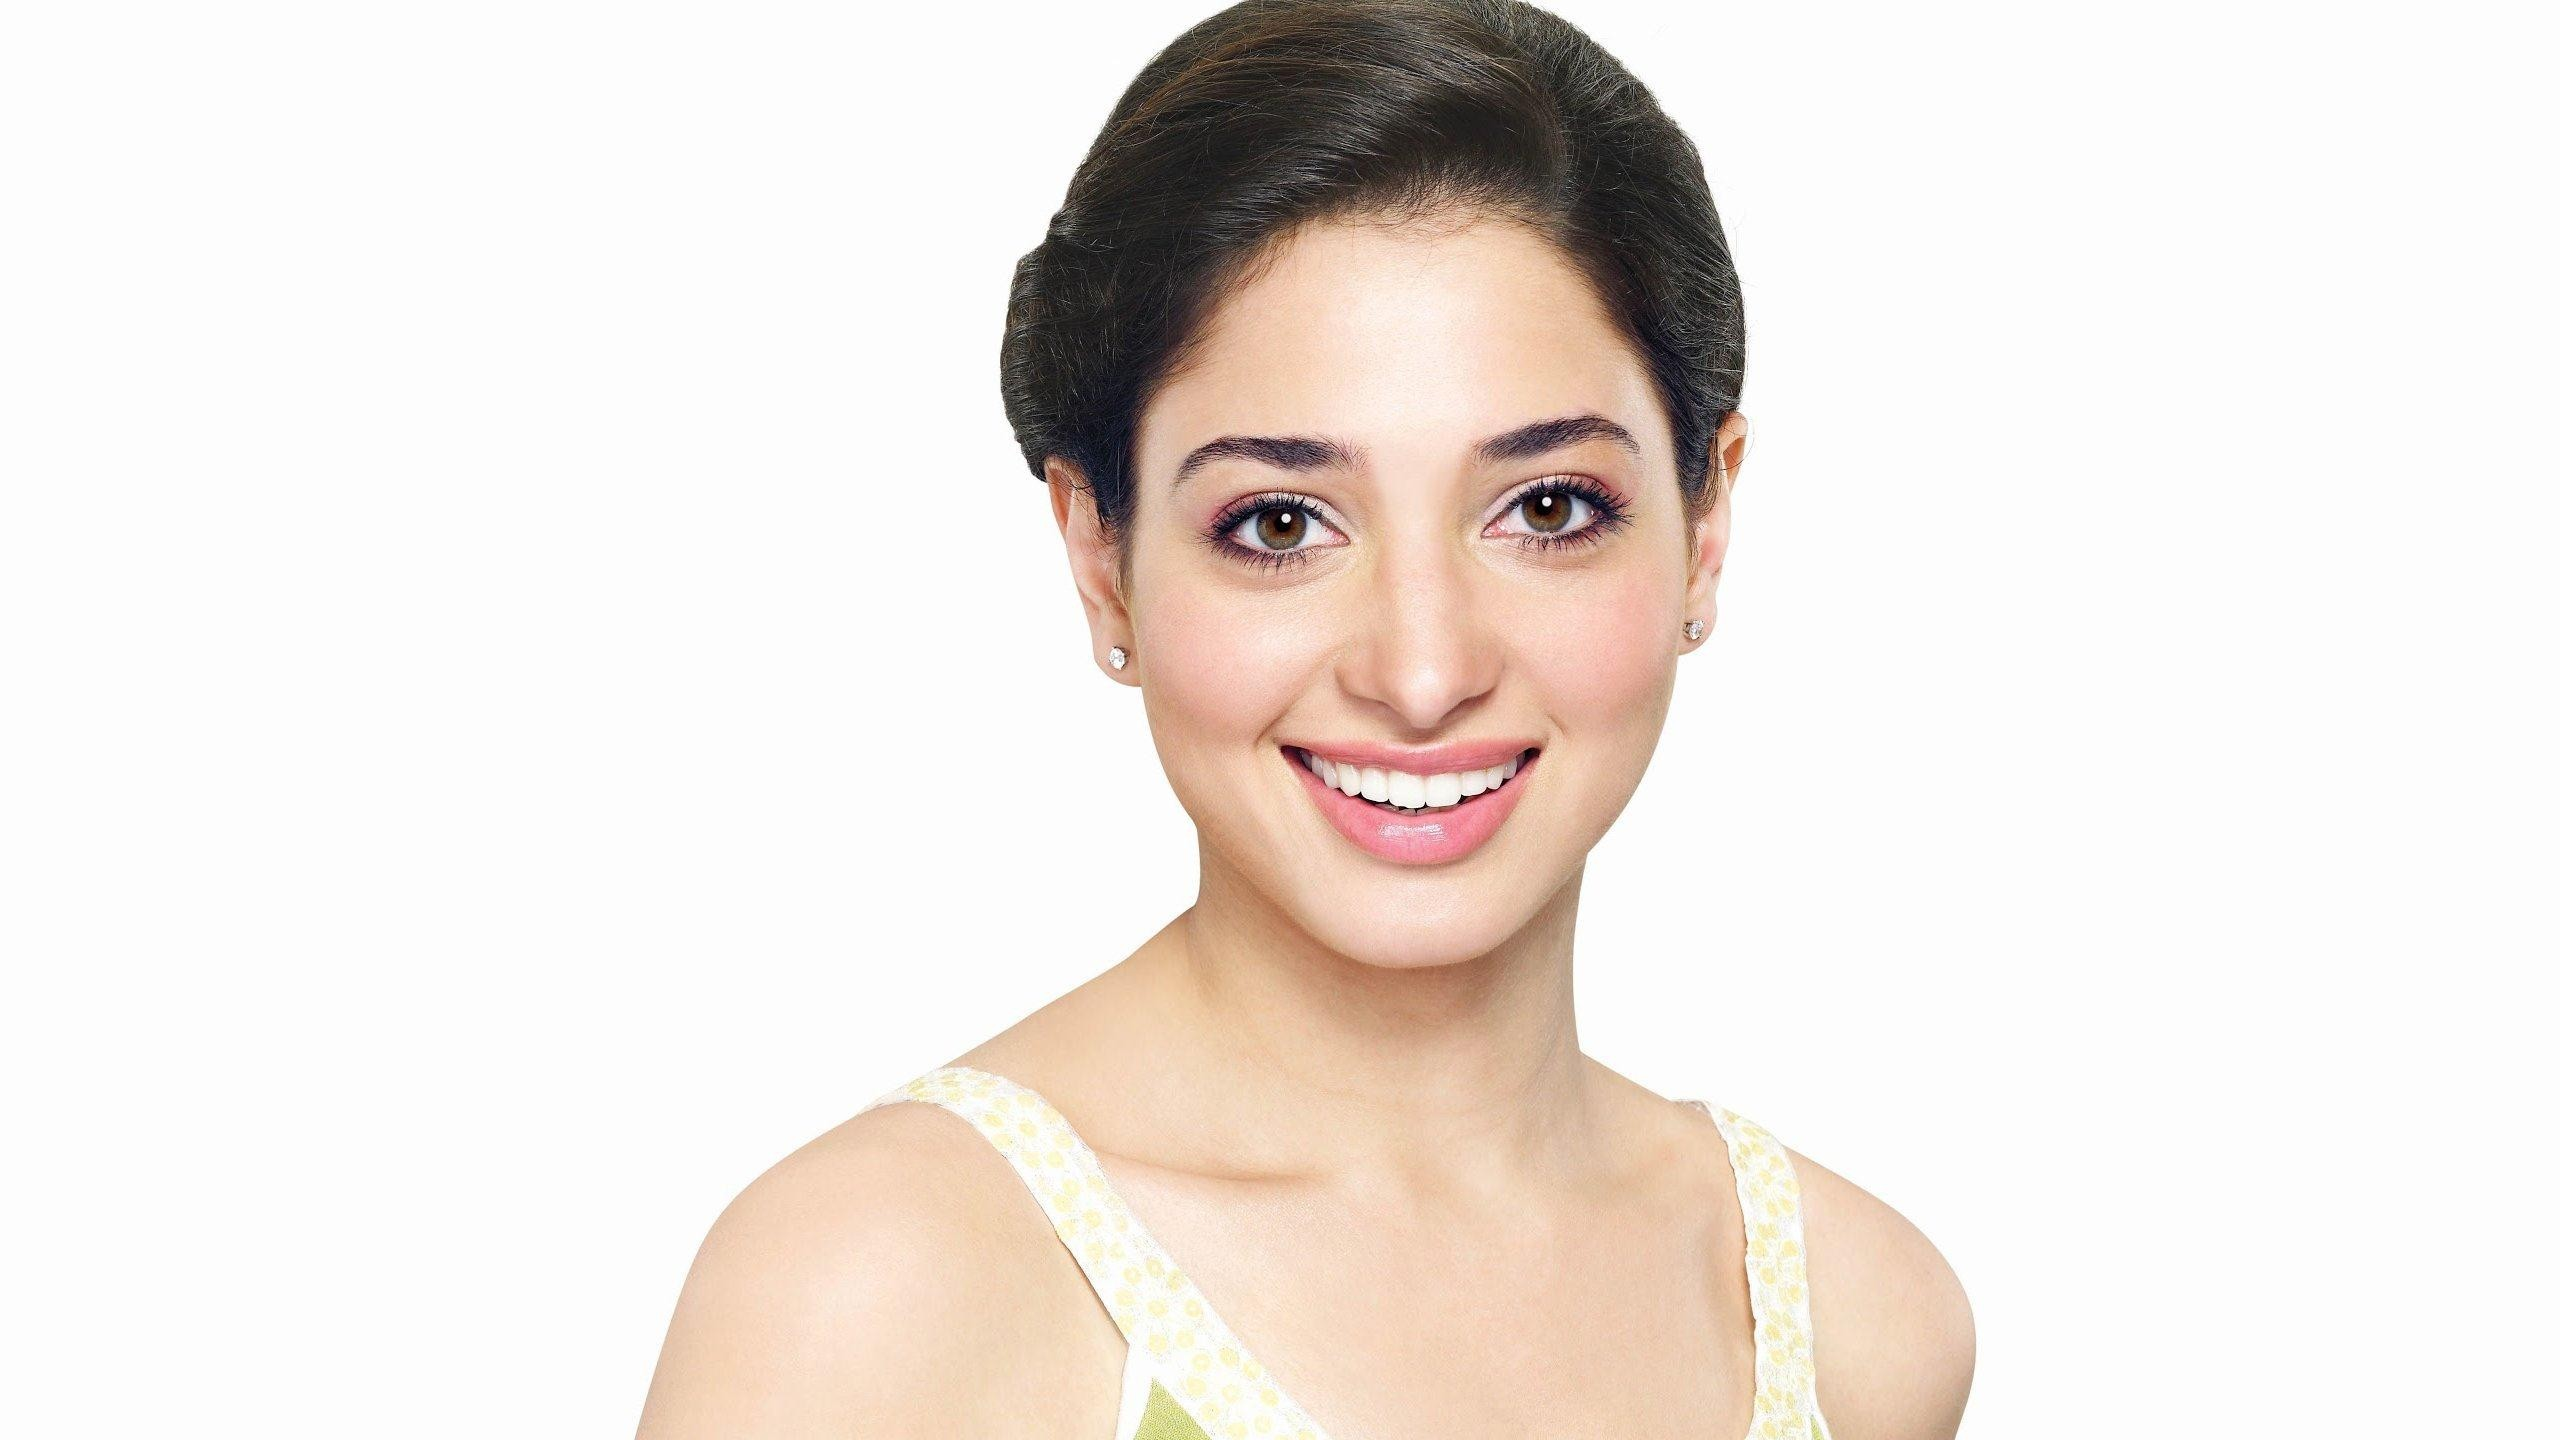 Tamanna Bhatia Wallpaper: Tamanna Bhatia Wallpapers, Pictures, Images